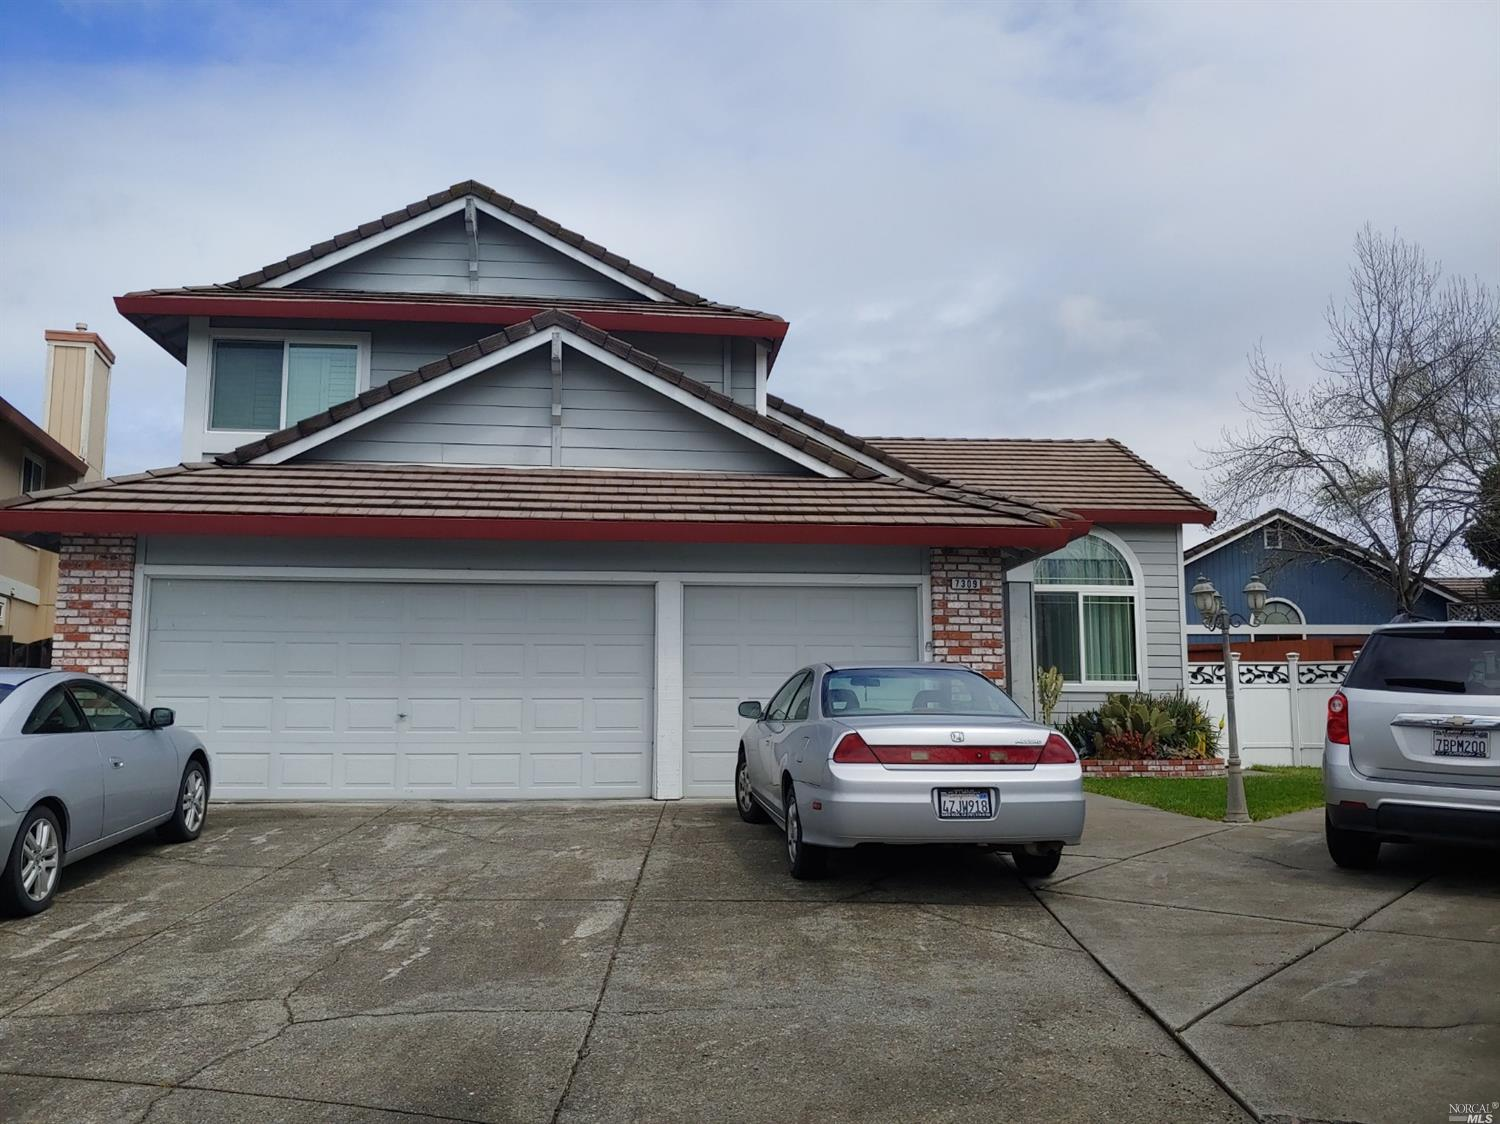 This beautiful home located close to Sonoma State and Co signers are welcome!! Some features include,  laminate floors, gas range, refrigerator, washer and dryer, duel pane window, home updated through out. Large back and side yard, RV parking. Available June 1.  Sorry, no pets.